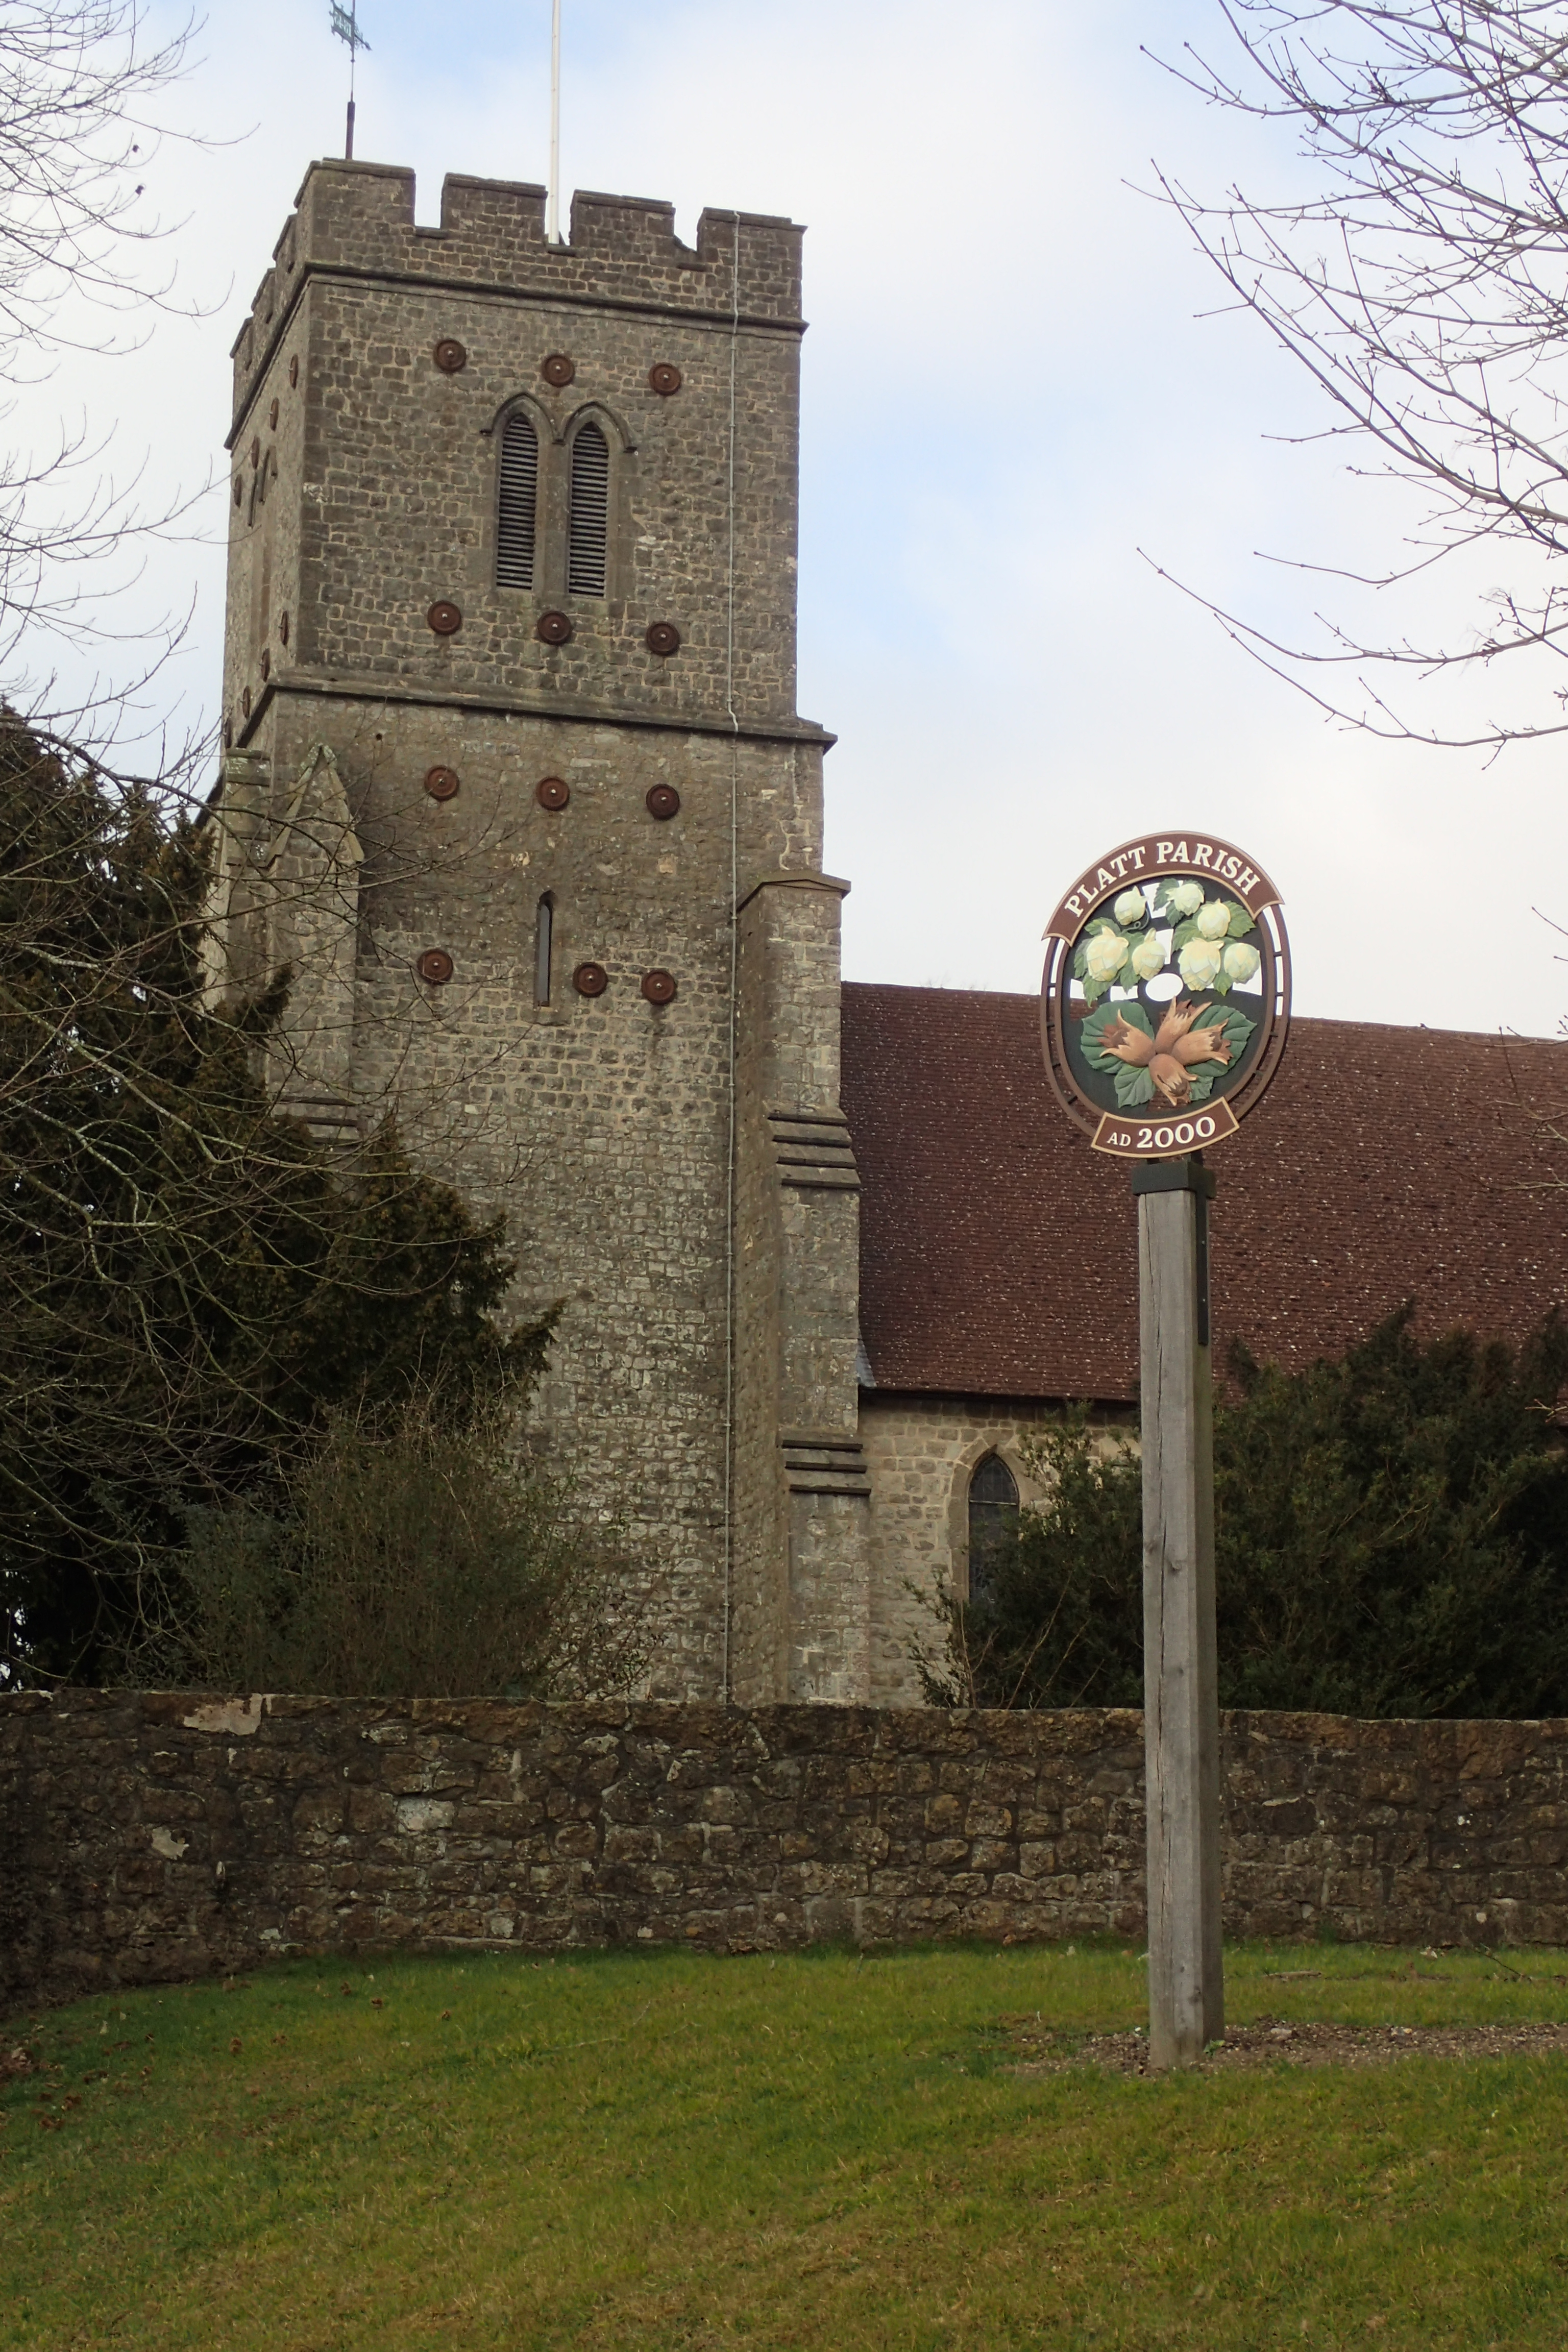 Village sign at Platt Parish, passed on the London Countryway